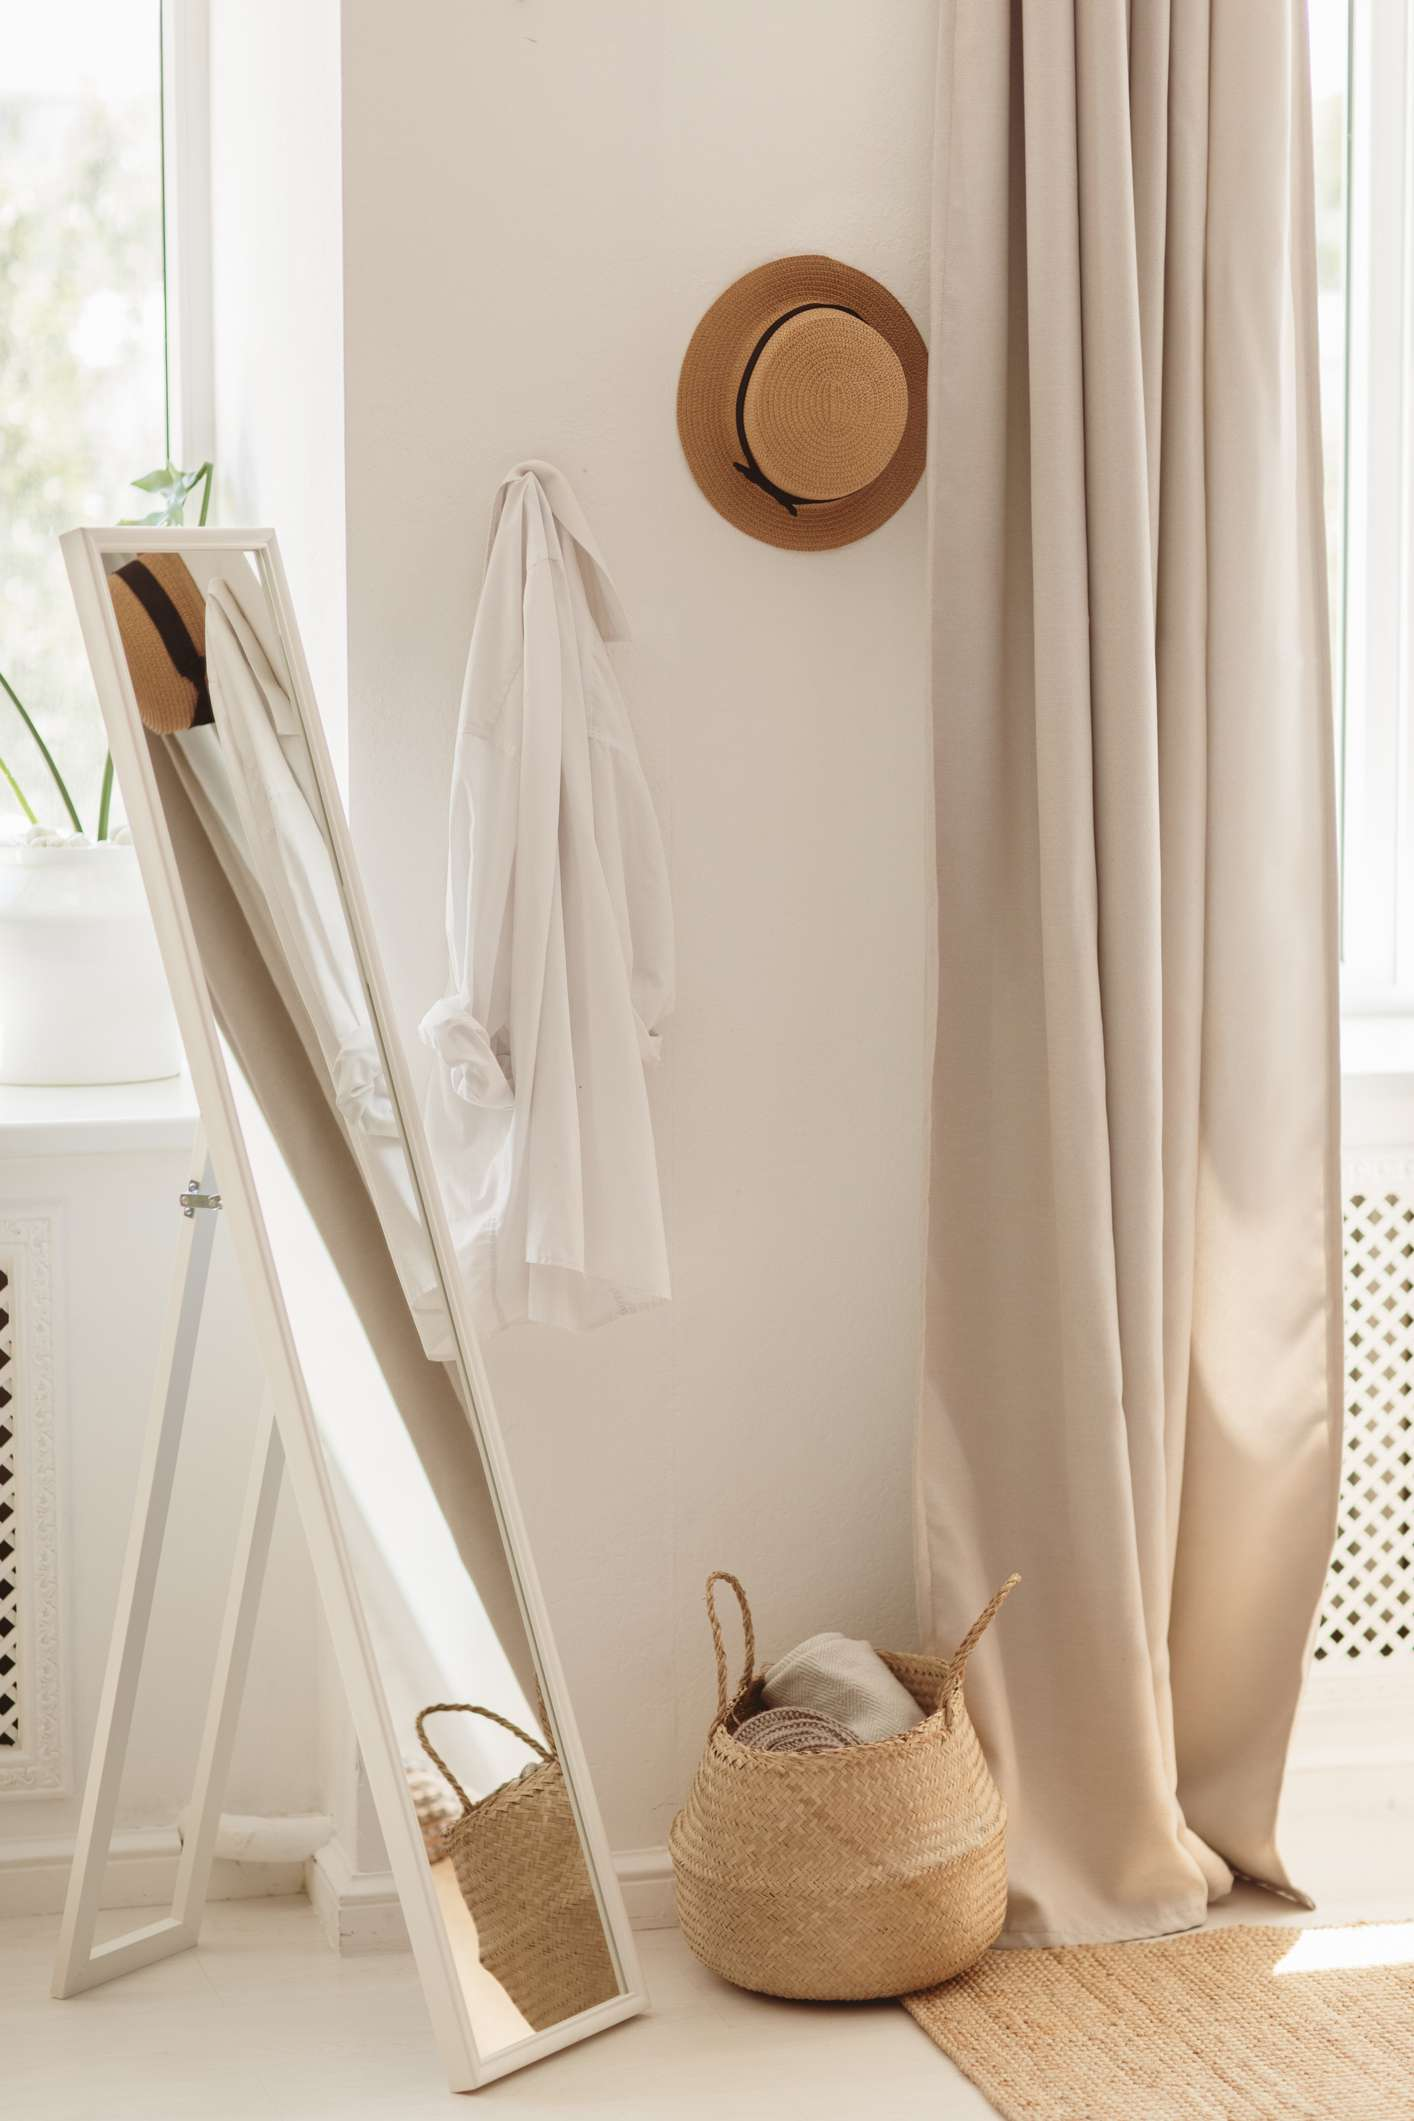 Hallway interior with big white mirror, straw hat, white shirt and basket with clothes near wall. Modern cozy hall interior.